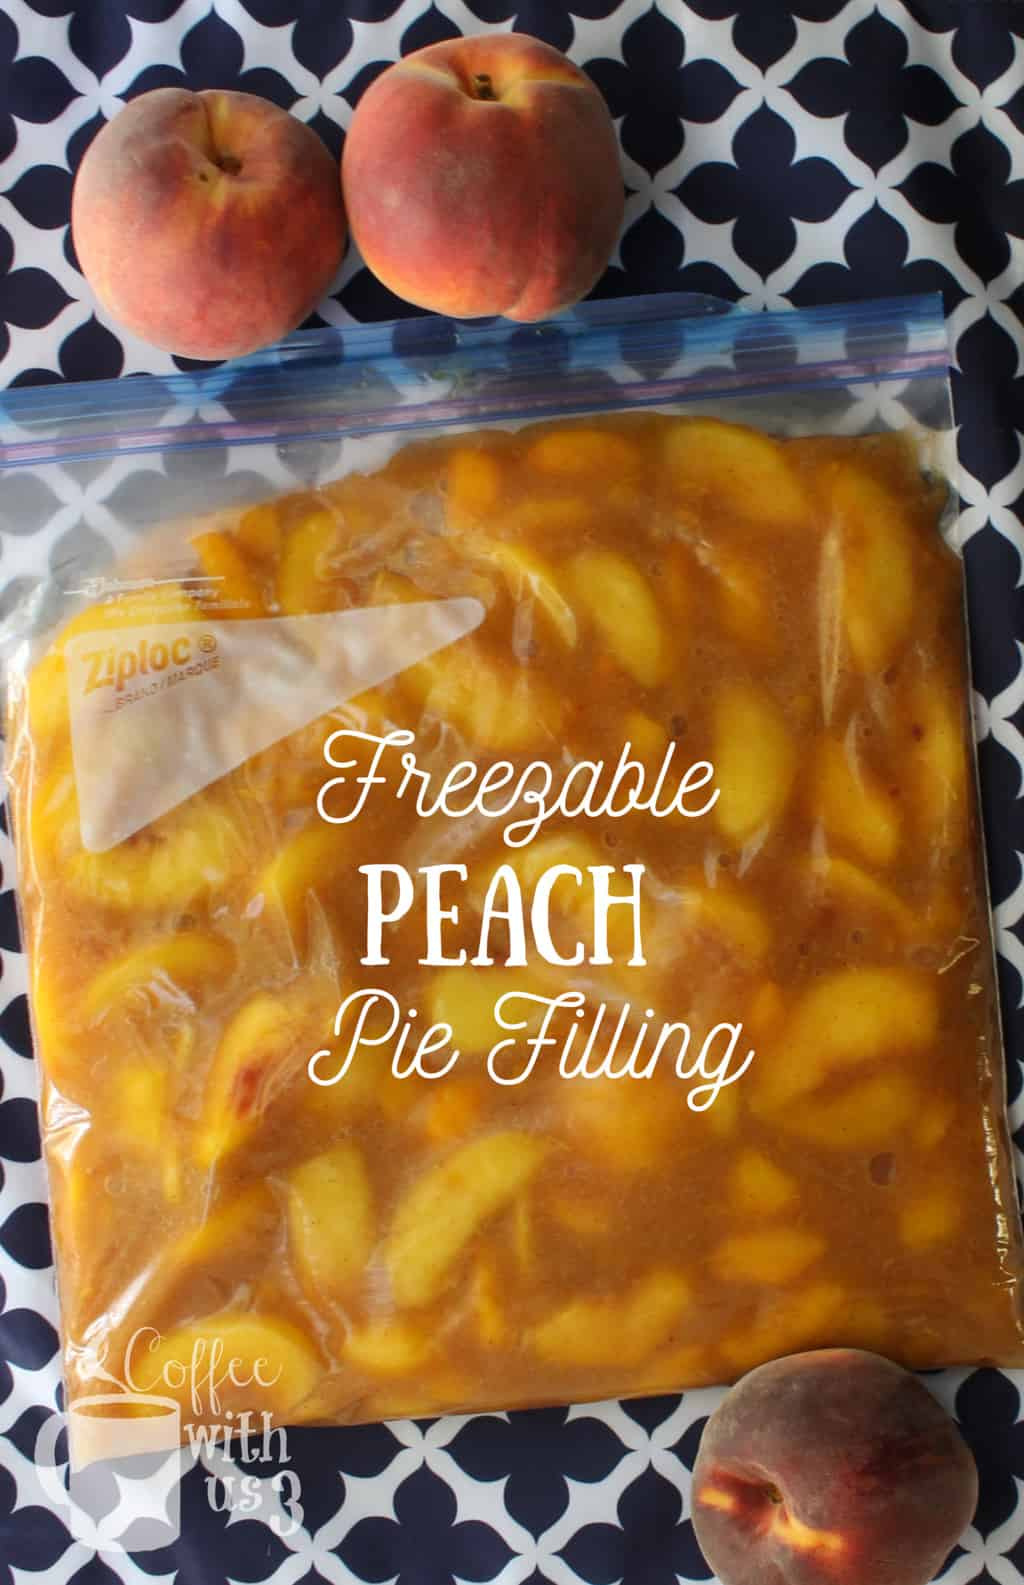 Preserve your delicious peaches to use all winter long with this freezable Peach Pie Filling recipe.